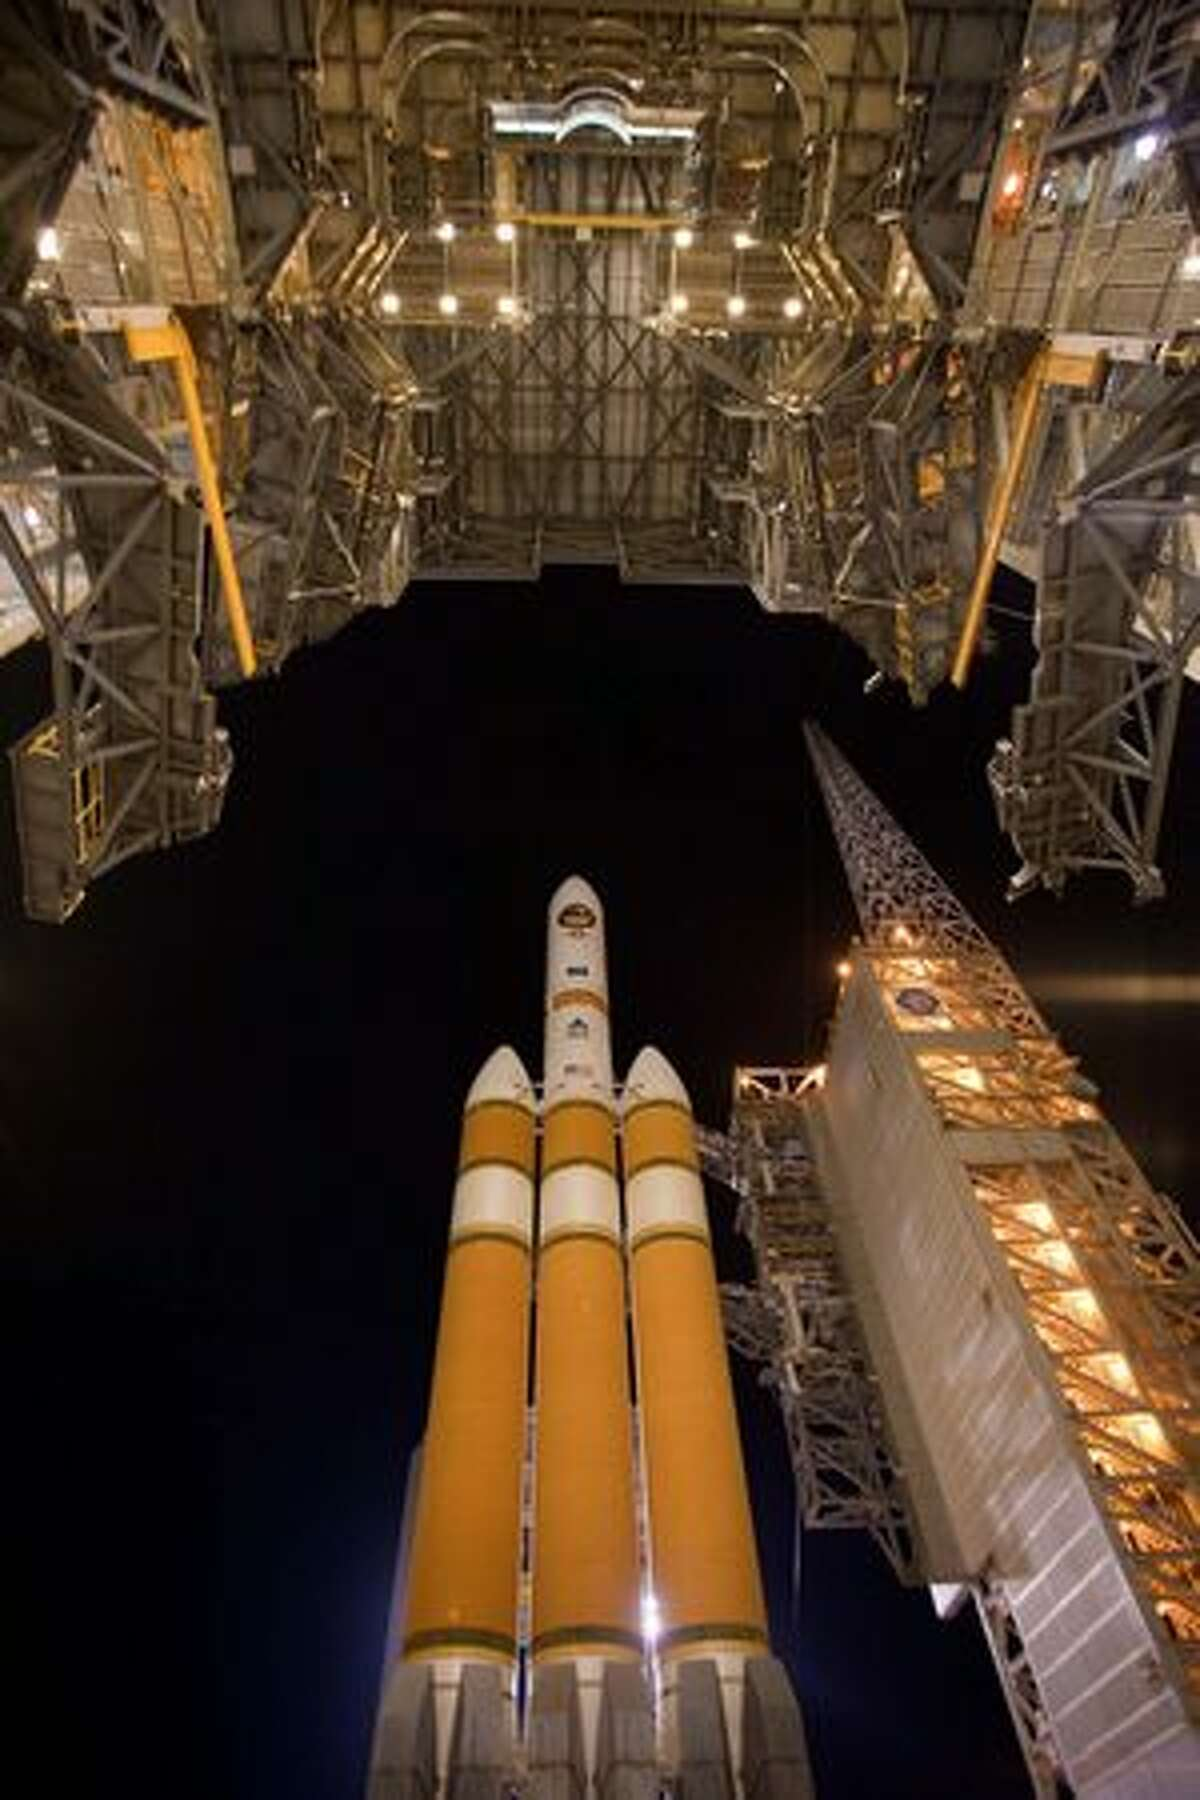 A United Launch Alliance Delta IV rocket sits on the launch pad at Vandenberg Air Force Base, Calif. (Pat Corkery/United Launch Alliance)